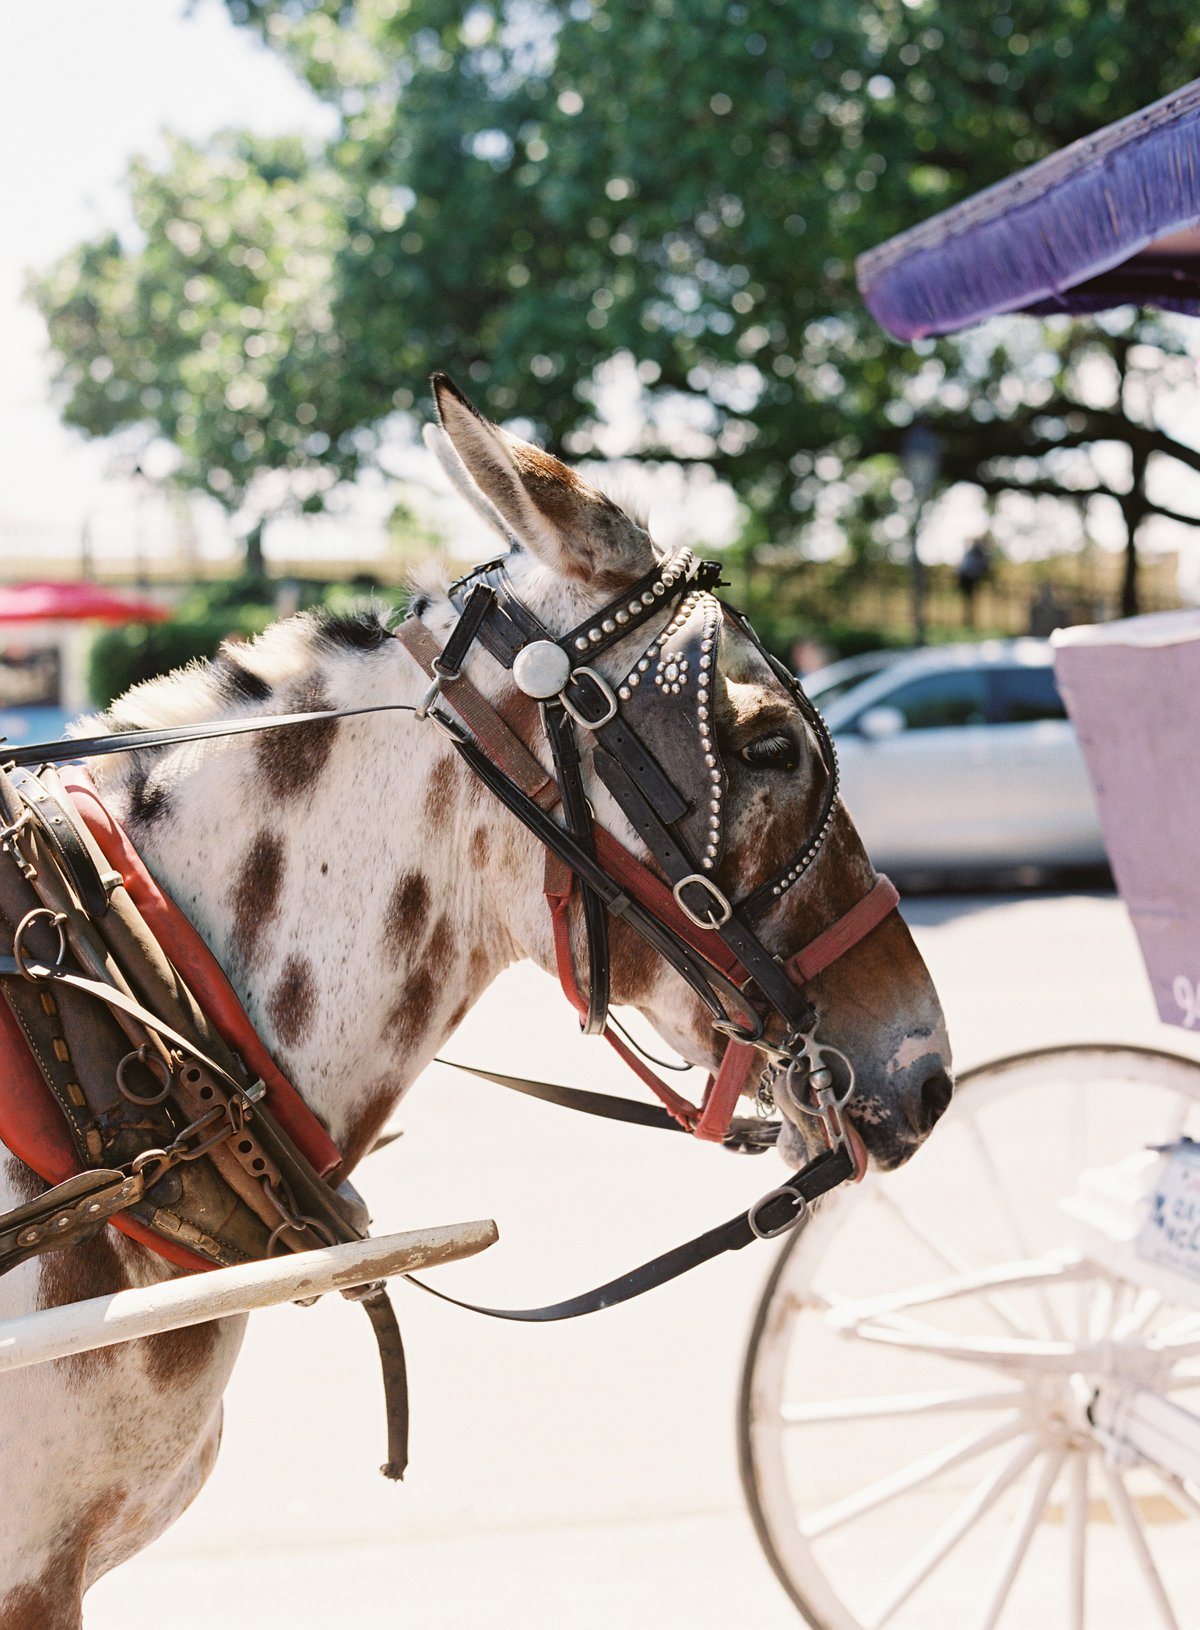 neworleanshorsecarriage.jpg